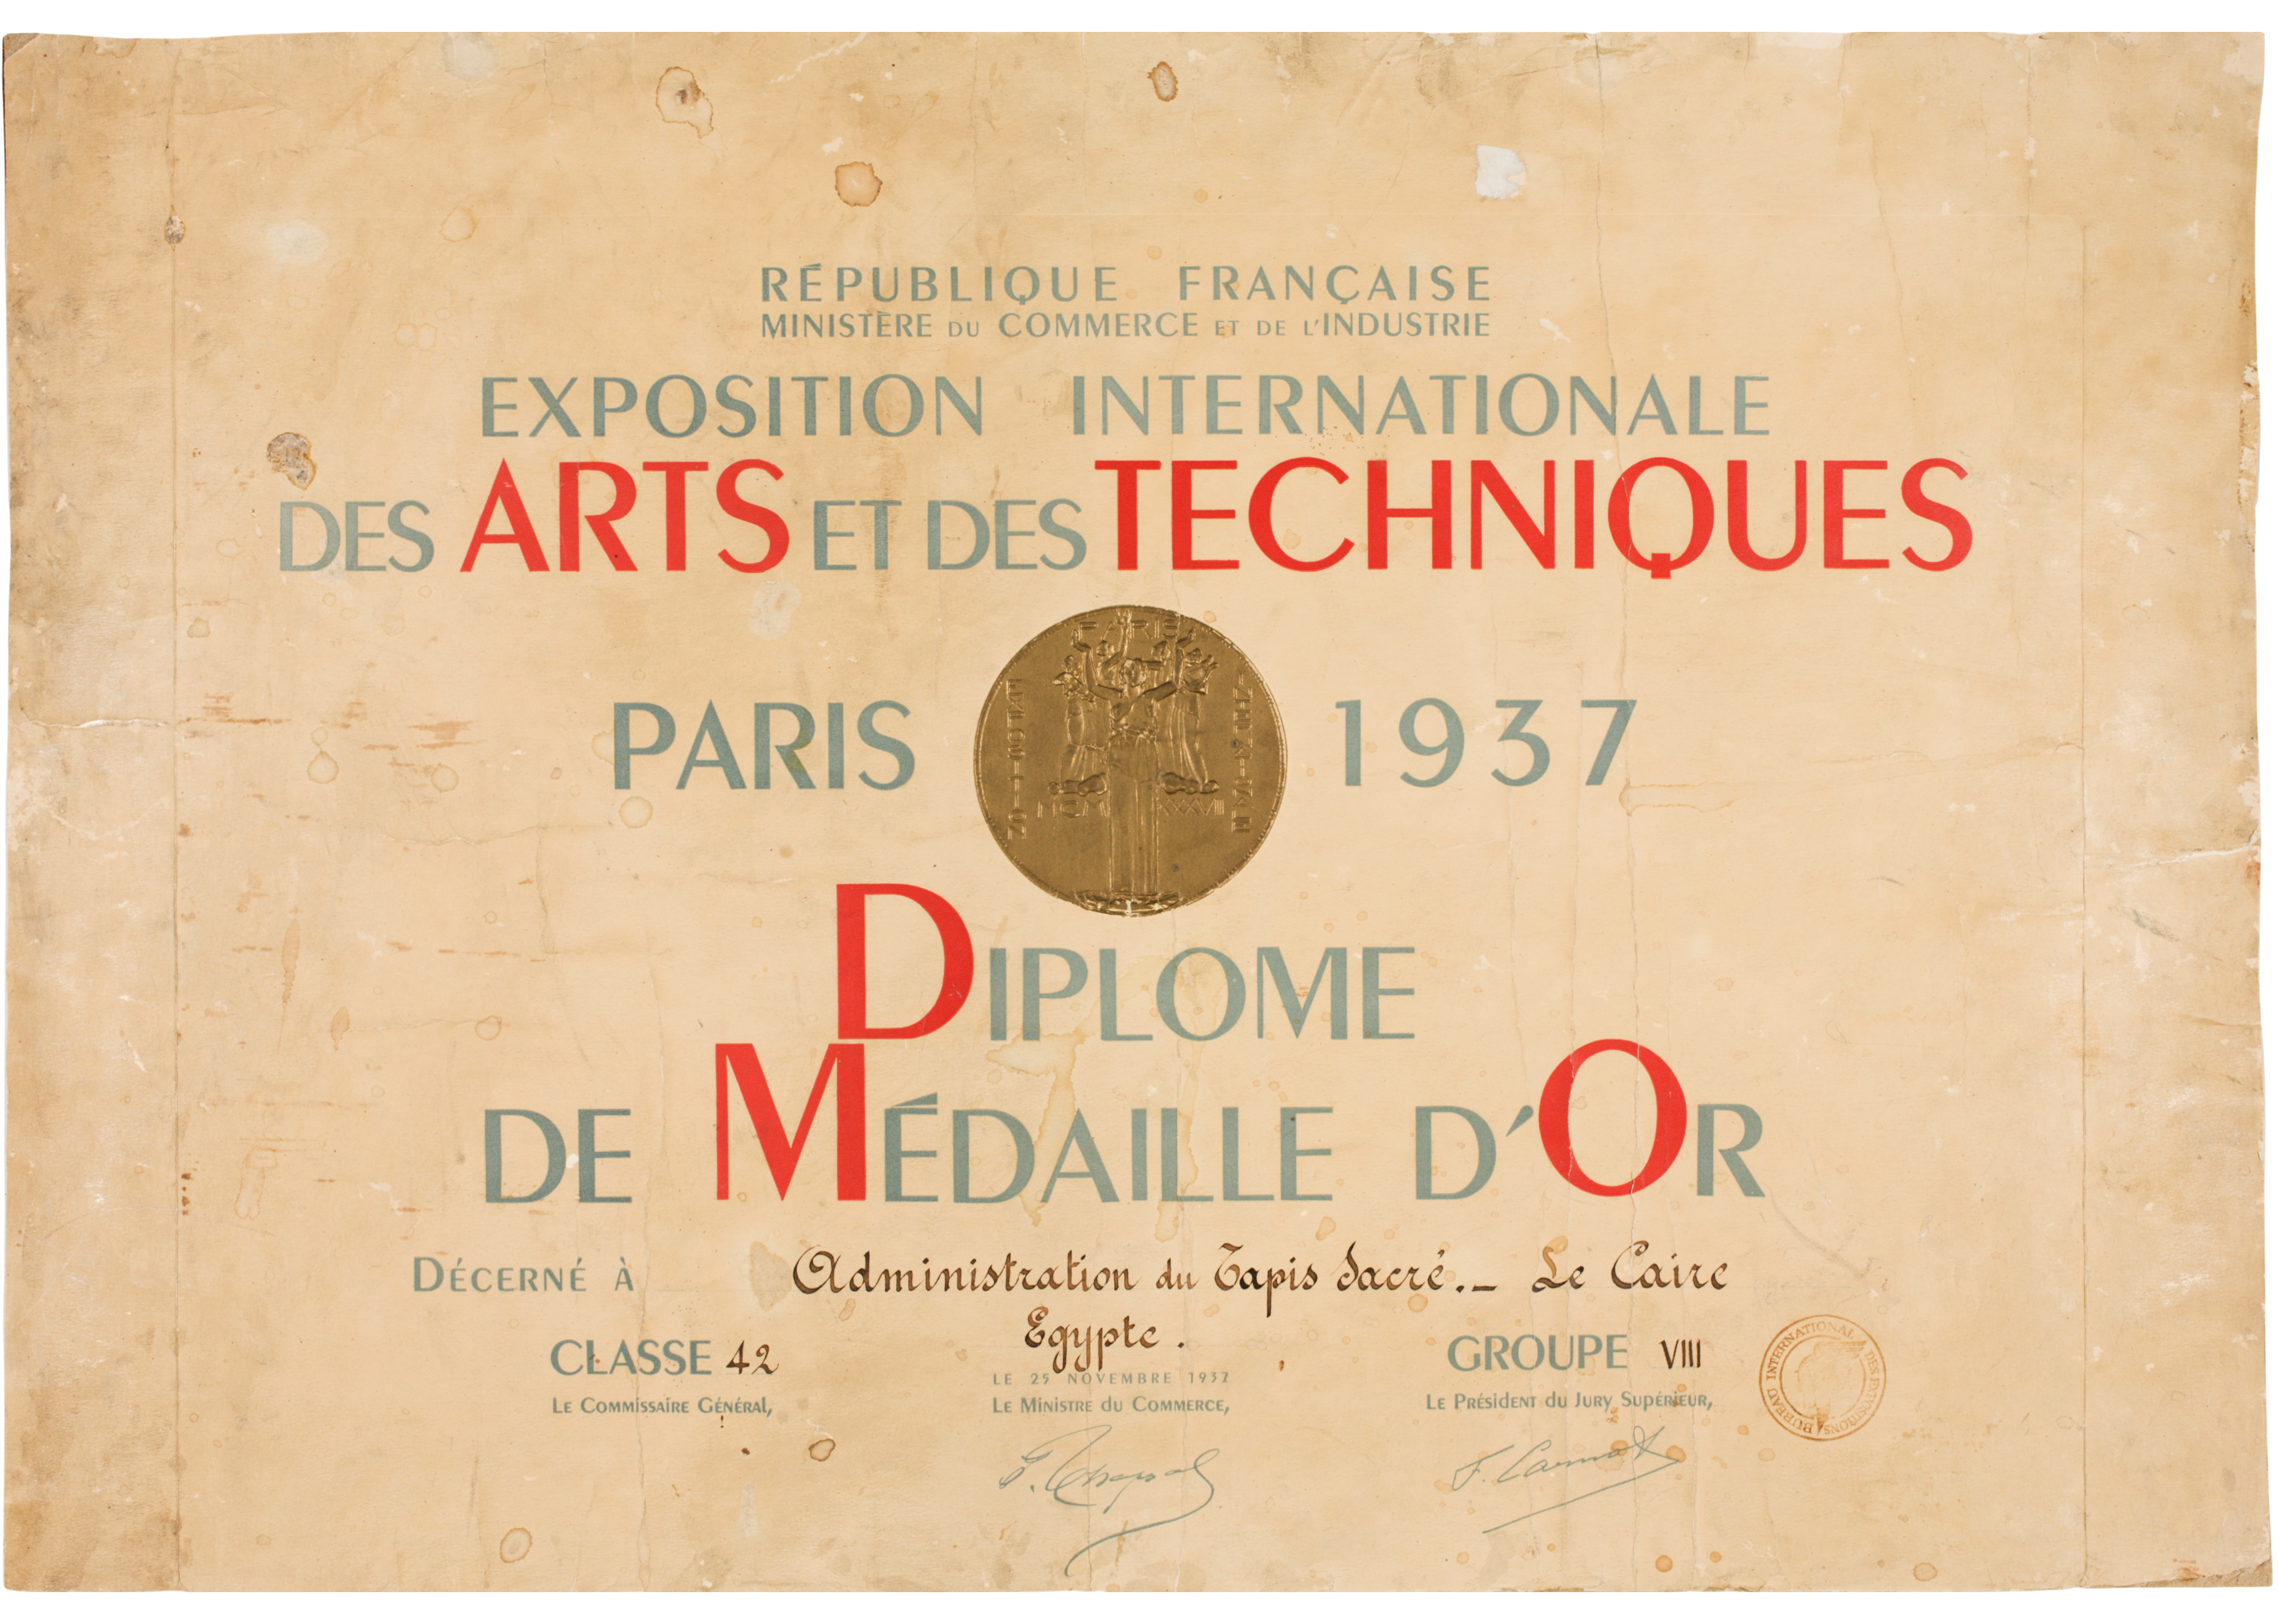 Diploma for a Gold Medal awarded to the 'Administration du Tapis Sacré